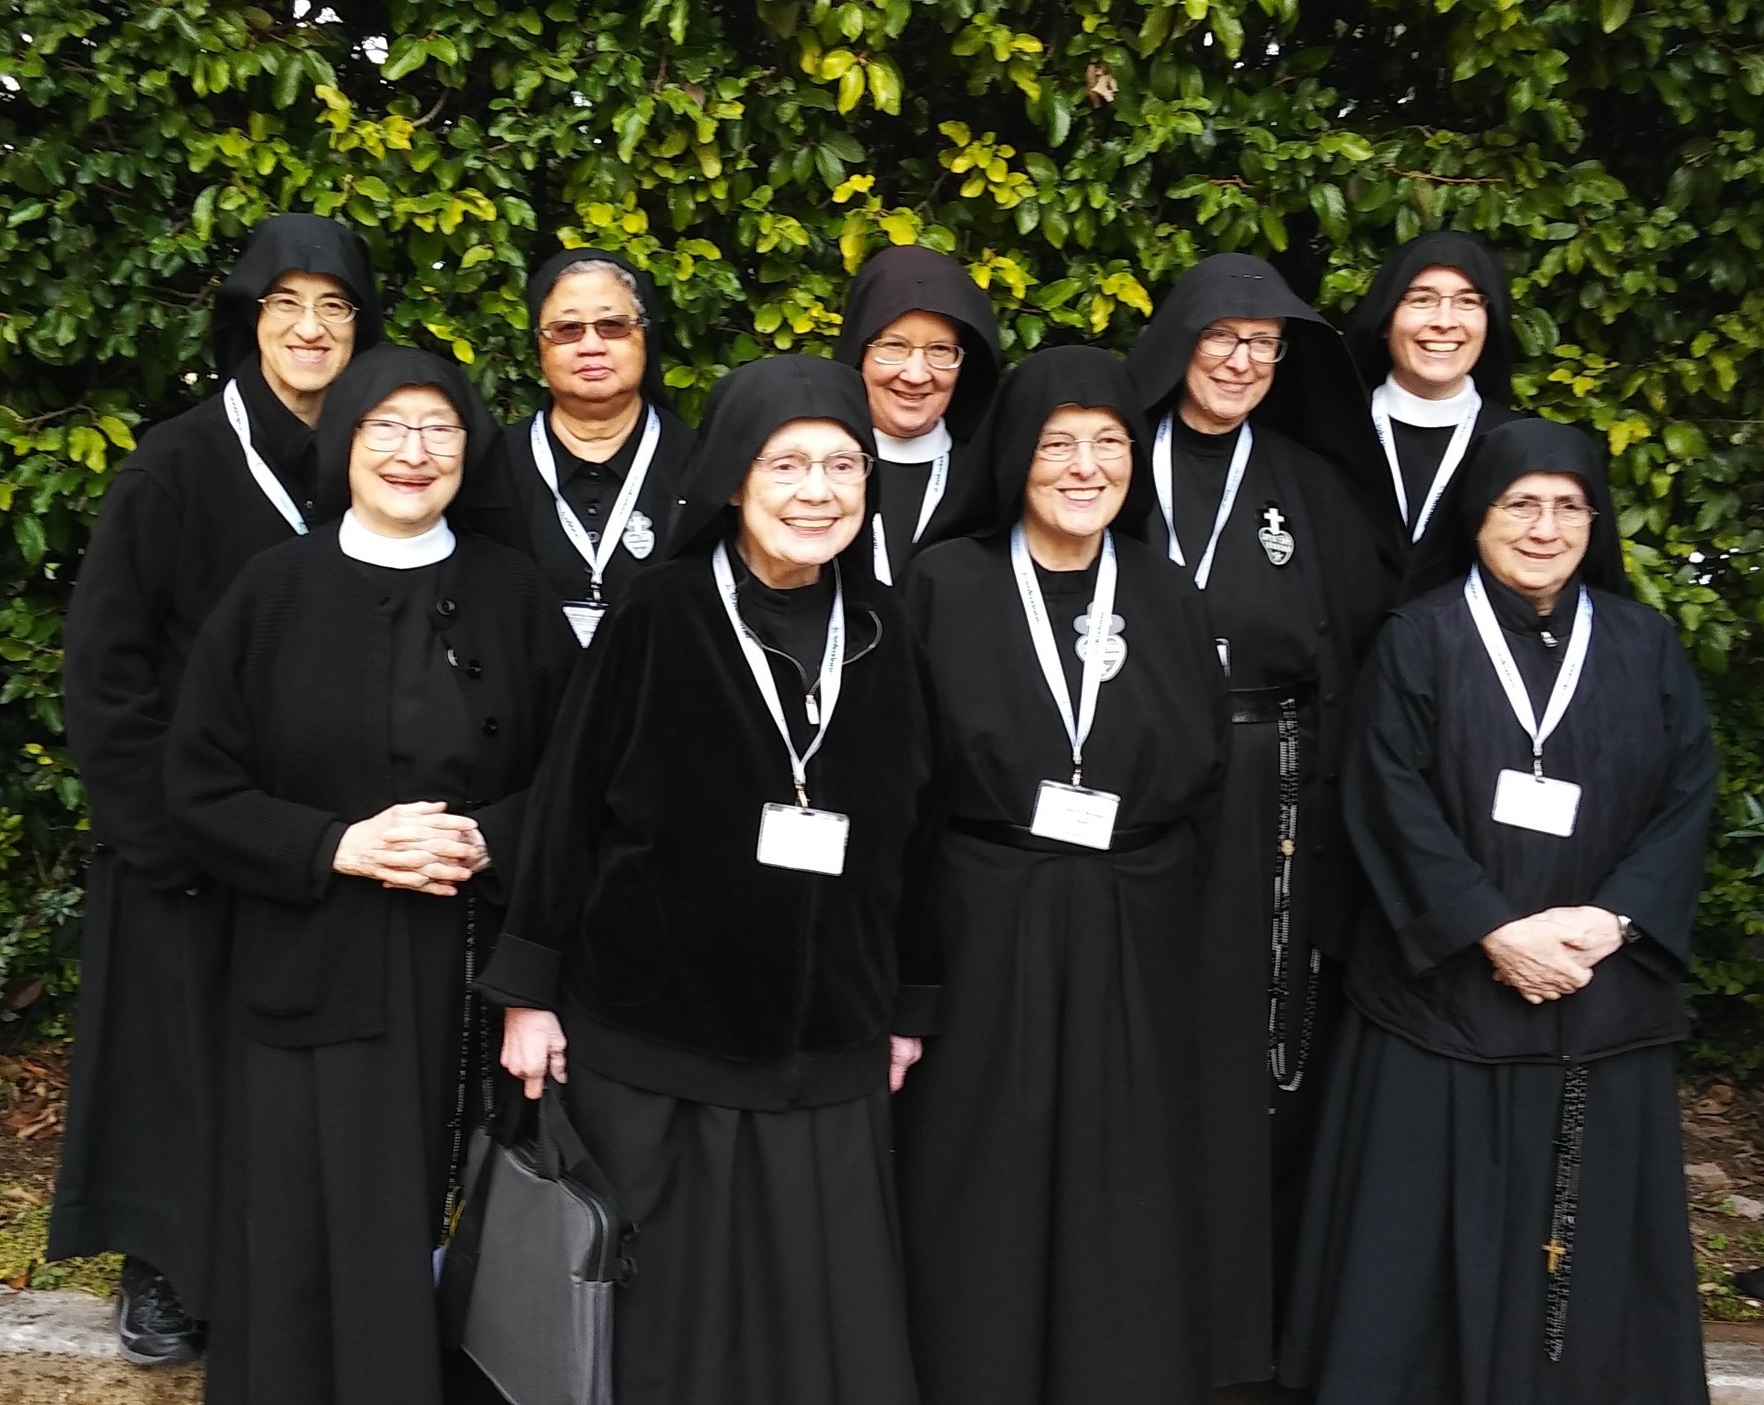 All the American nuns present at the General Chapter including our Mother Catherine Marie (bottom left), Mother John Mary (top right), and Sr. Mary Veronica (top center)